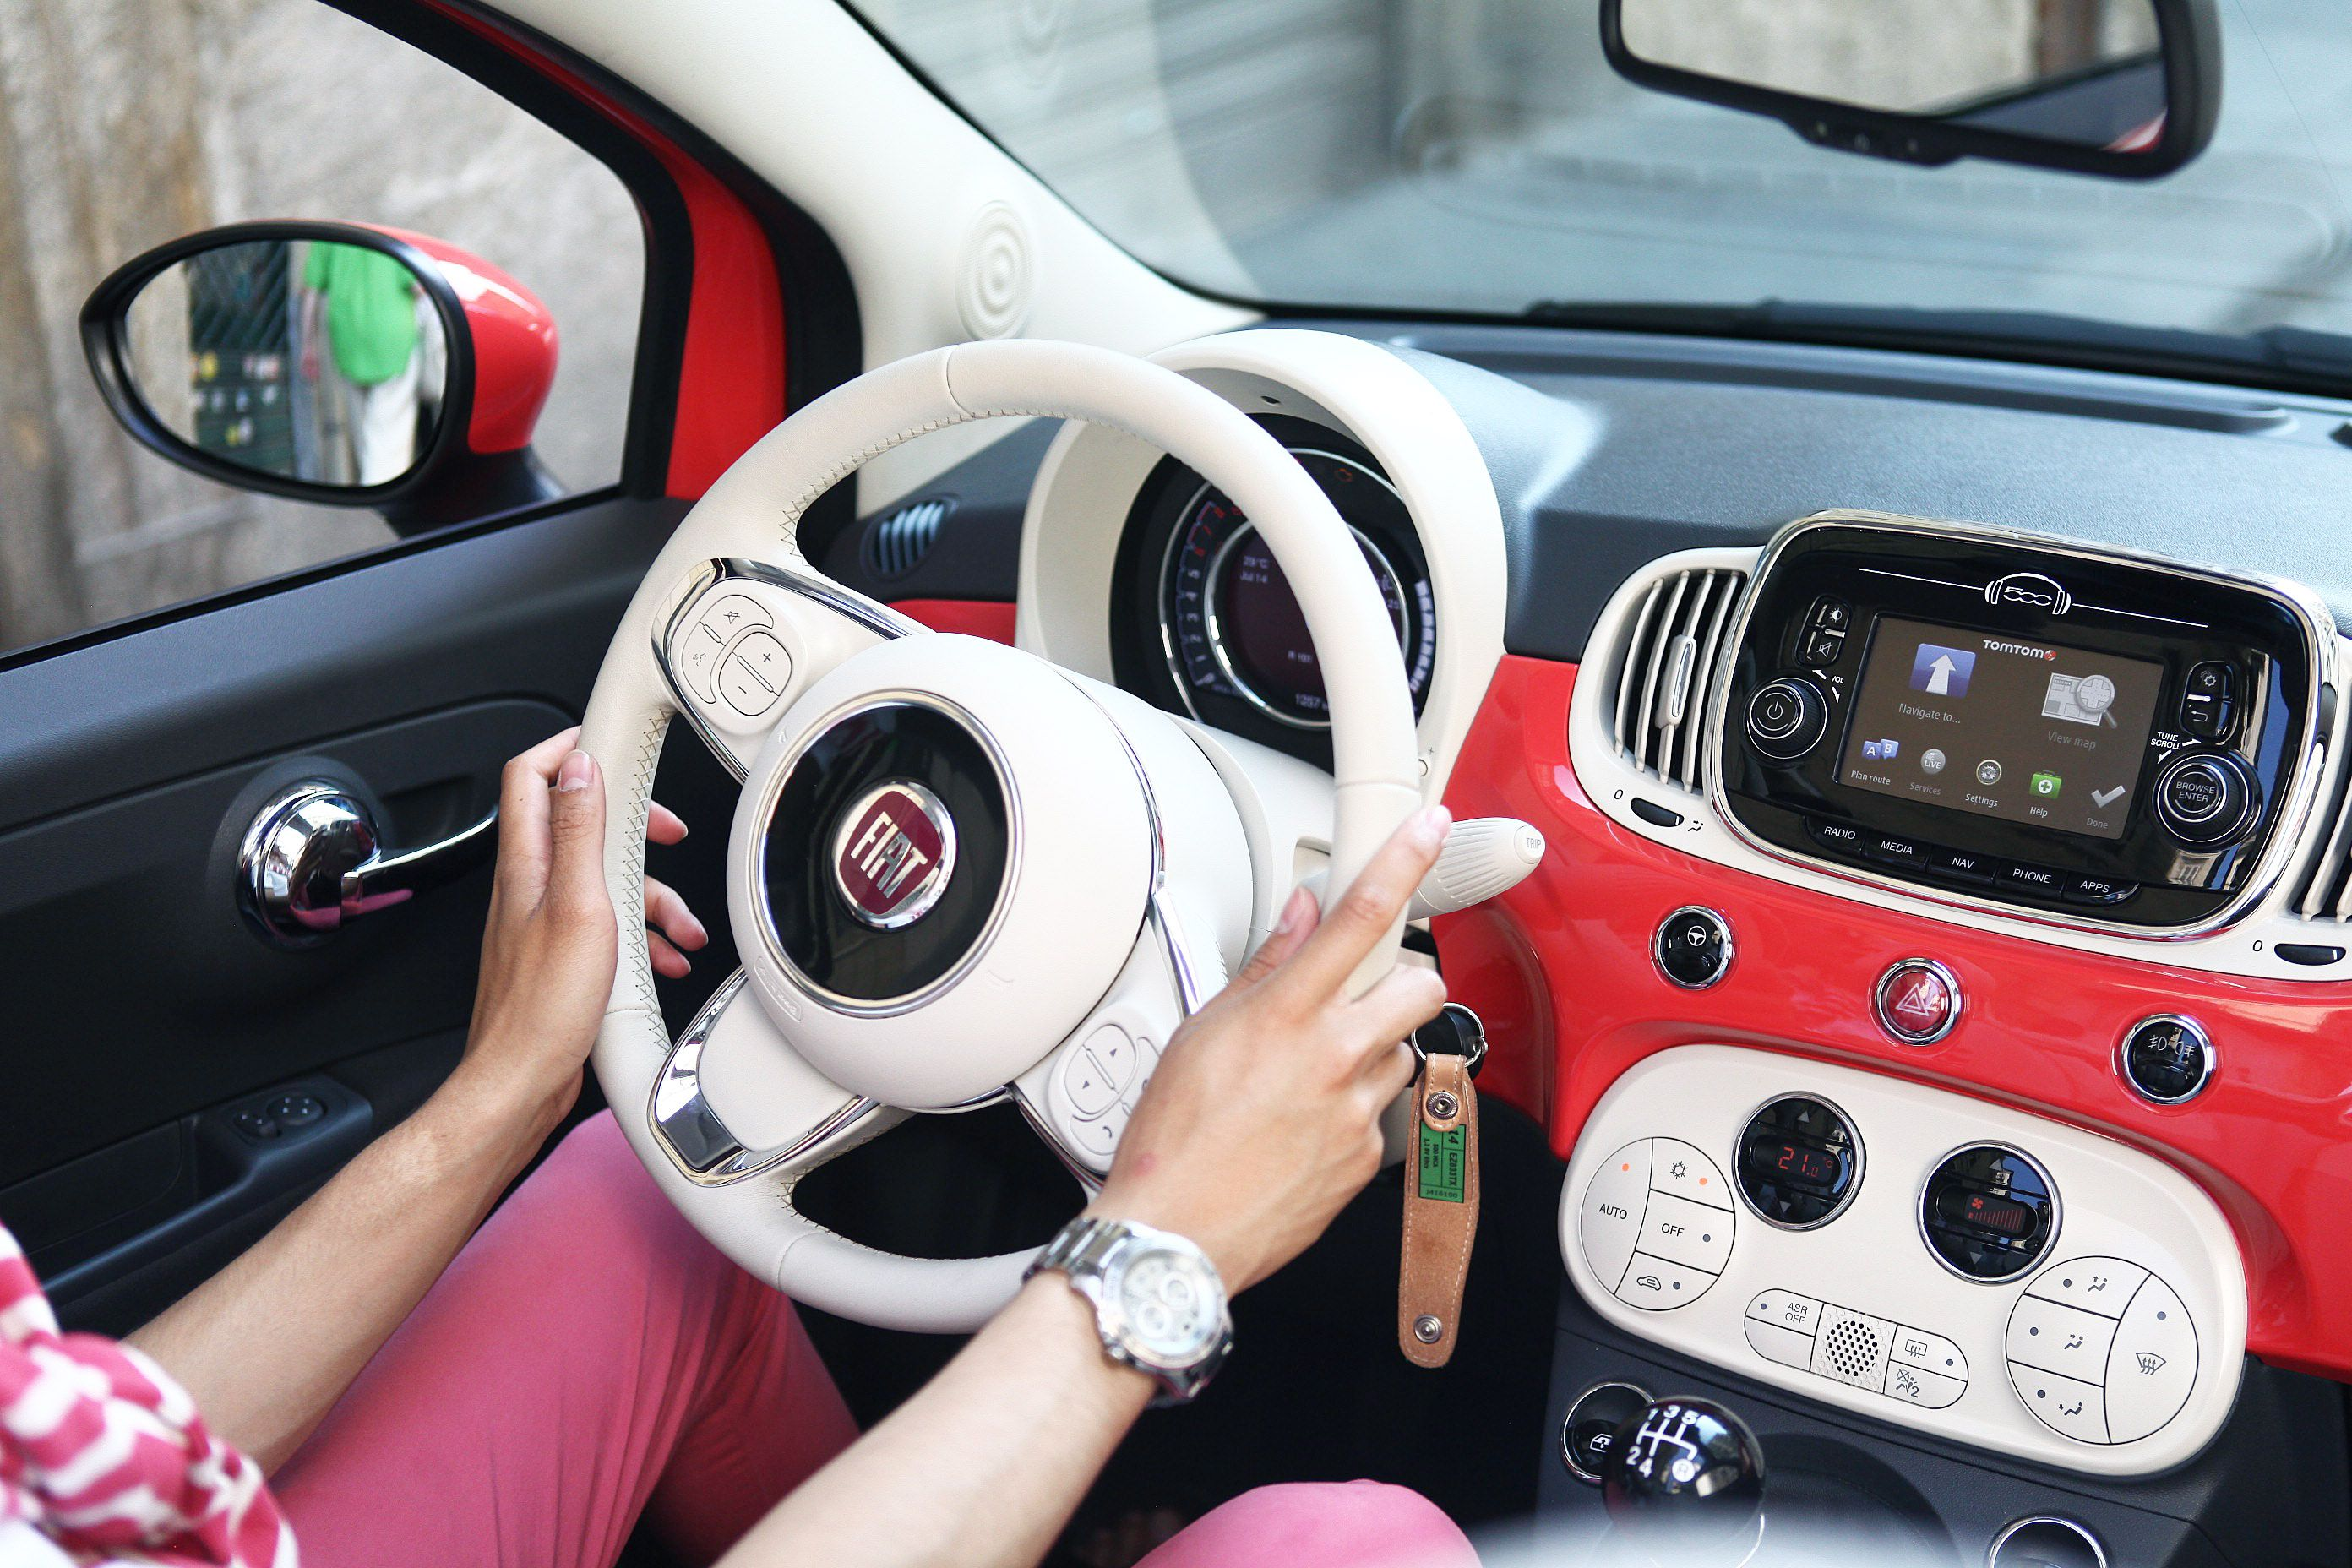 The new Fiat 500 Convertible Coral Interior, Steeling wheel and ...